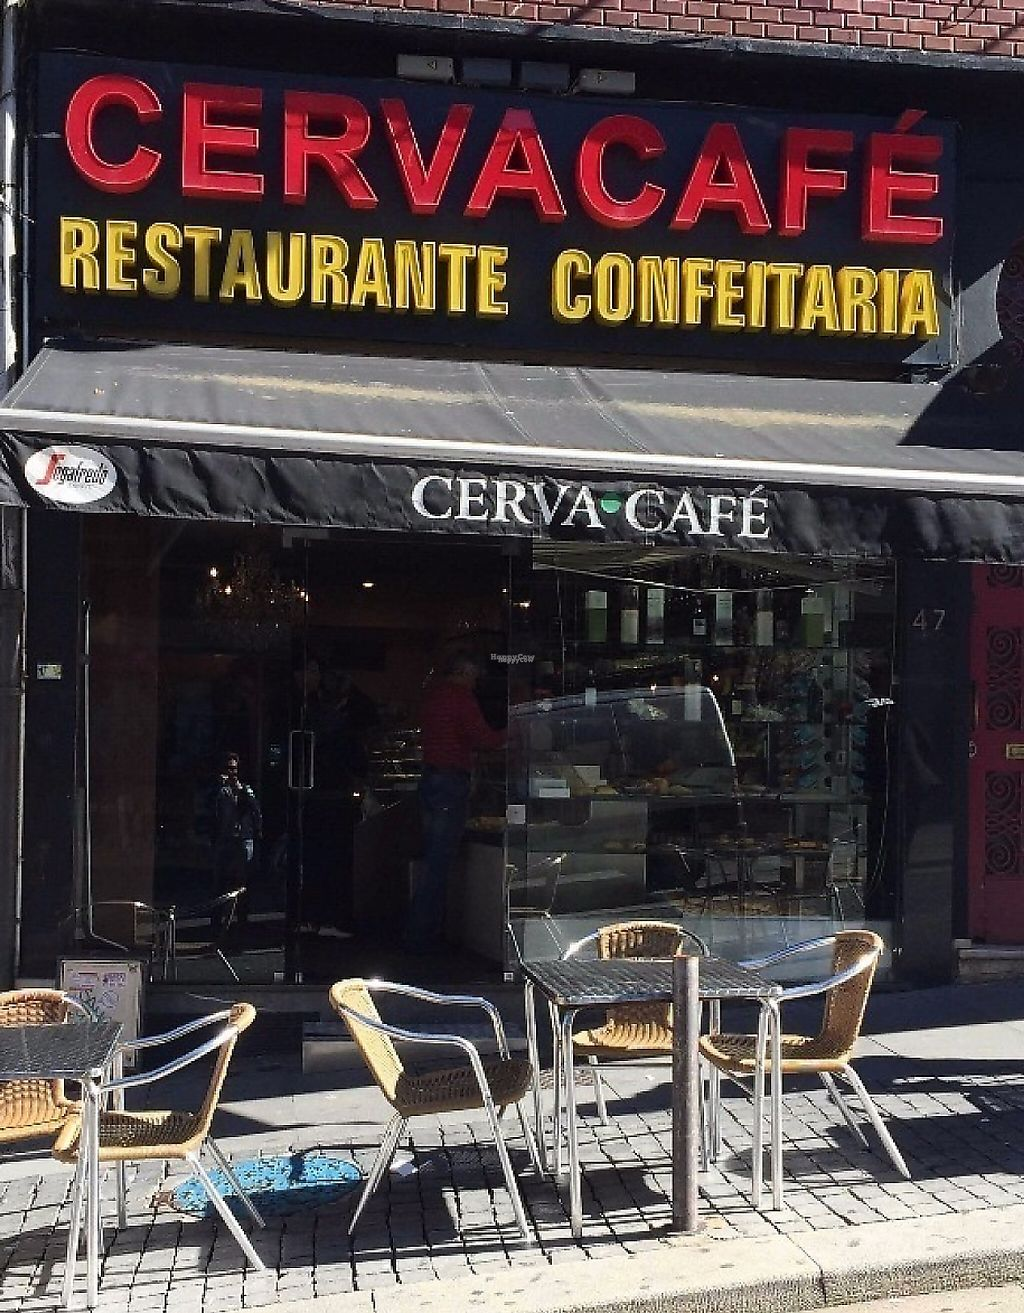 """Photo of Cerva Cafe  by <a href=""""/members/profile/community5"""">community5</a> <br/>Cerva Café <br/> March 19, 2017  - <a href='/contact/abuse/image/88932/242800'>Report</a>"""